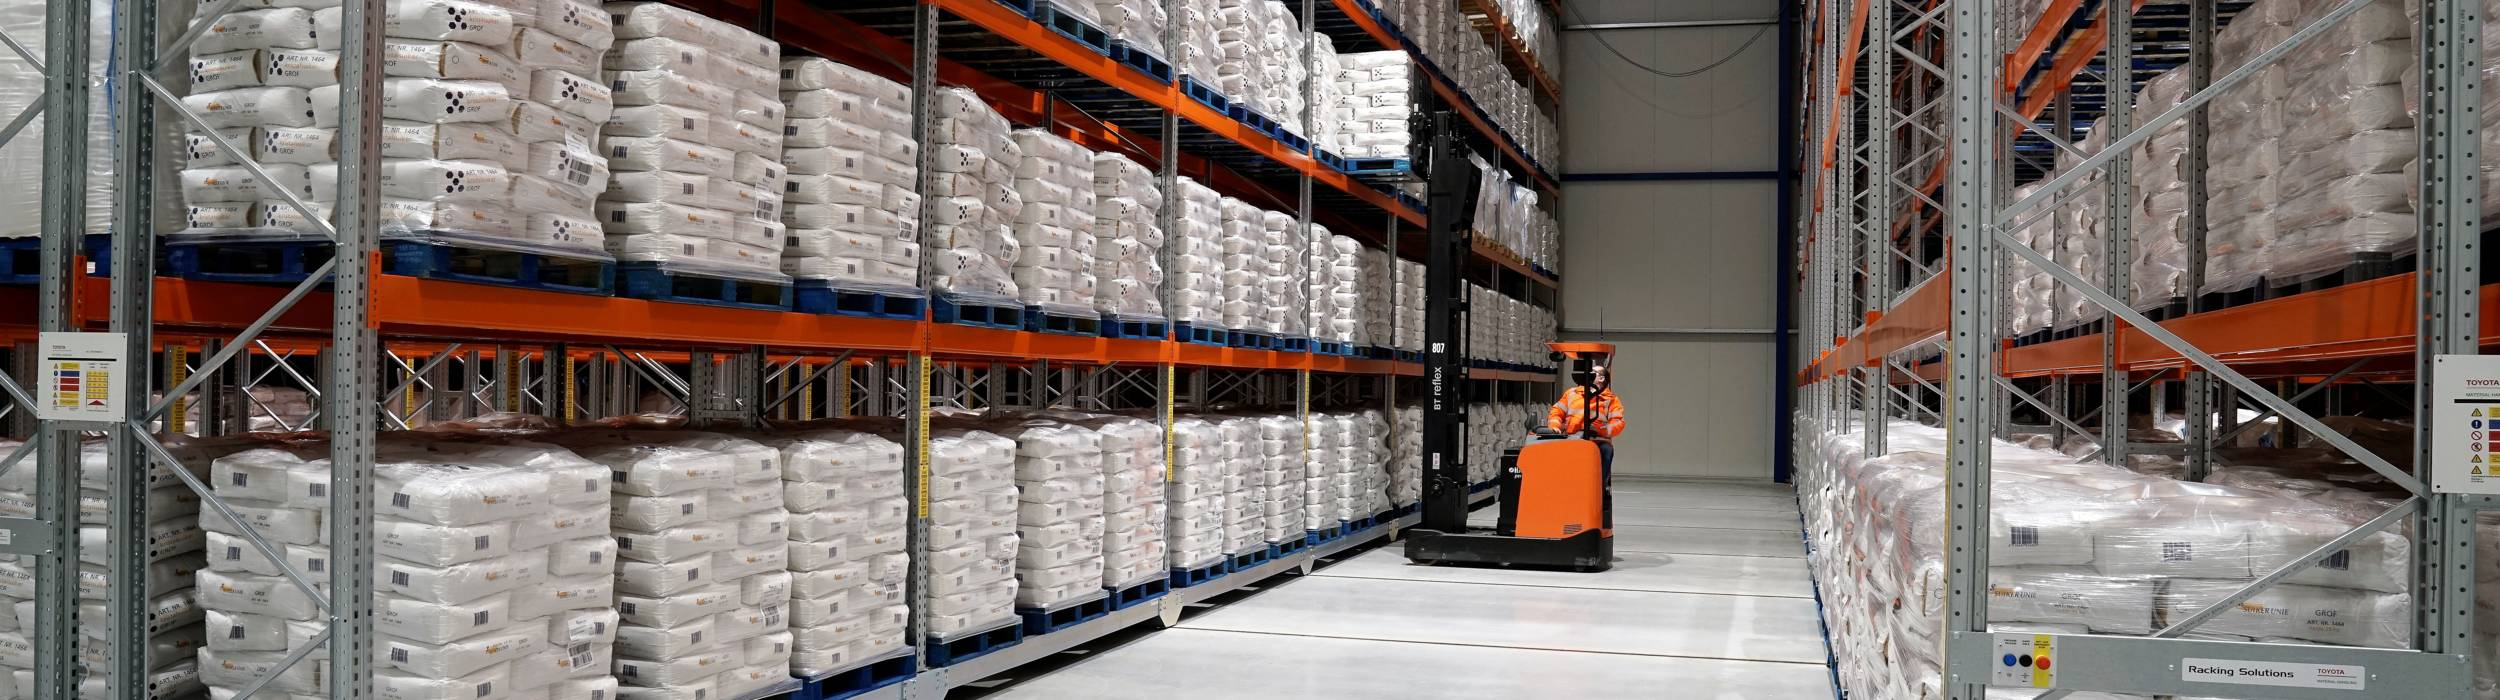 LCW Groningen expands warehouse with Toyota's shuttle and mobile